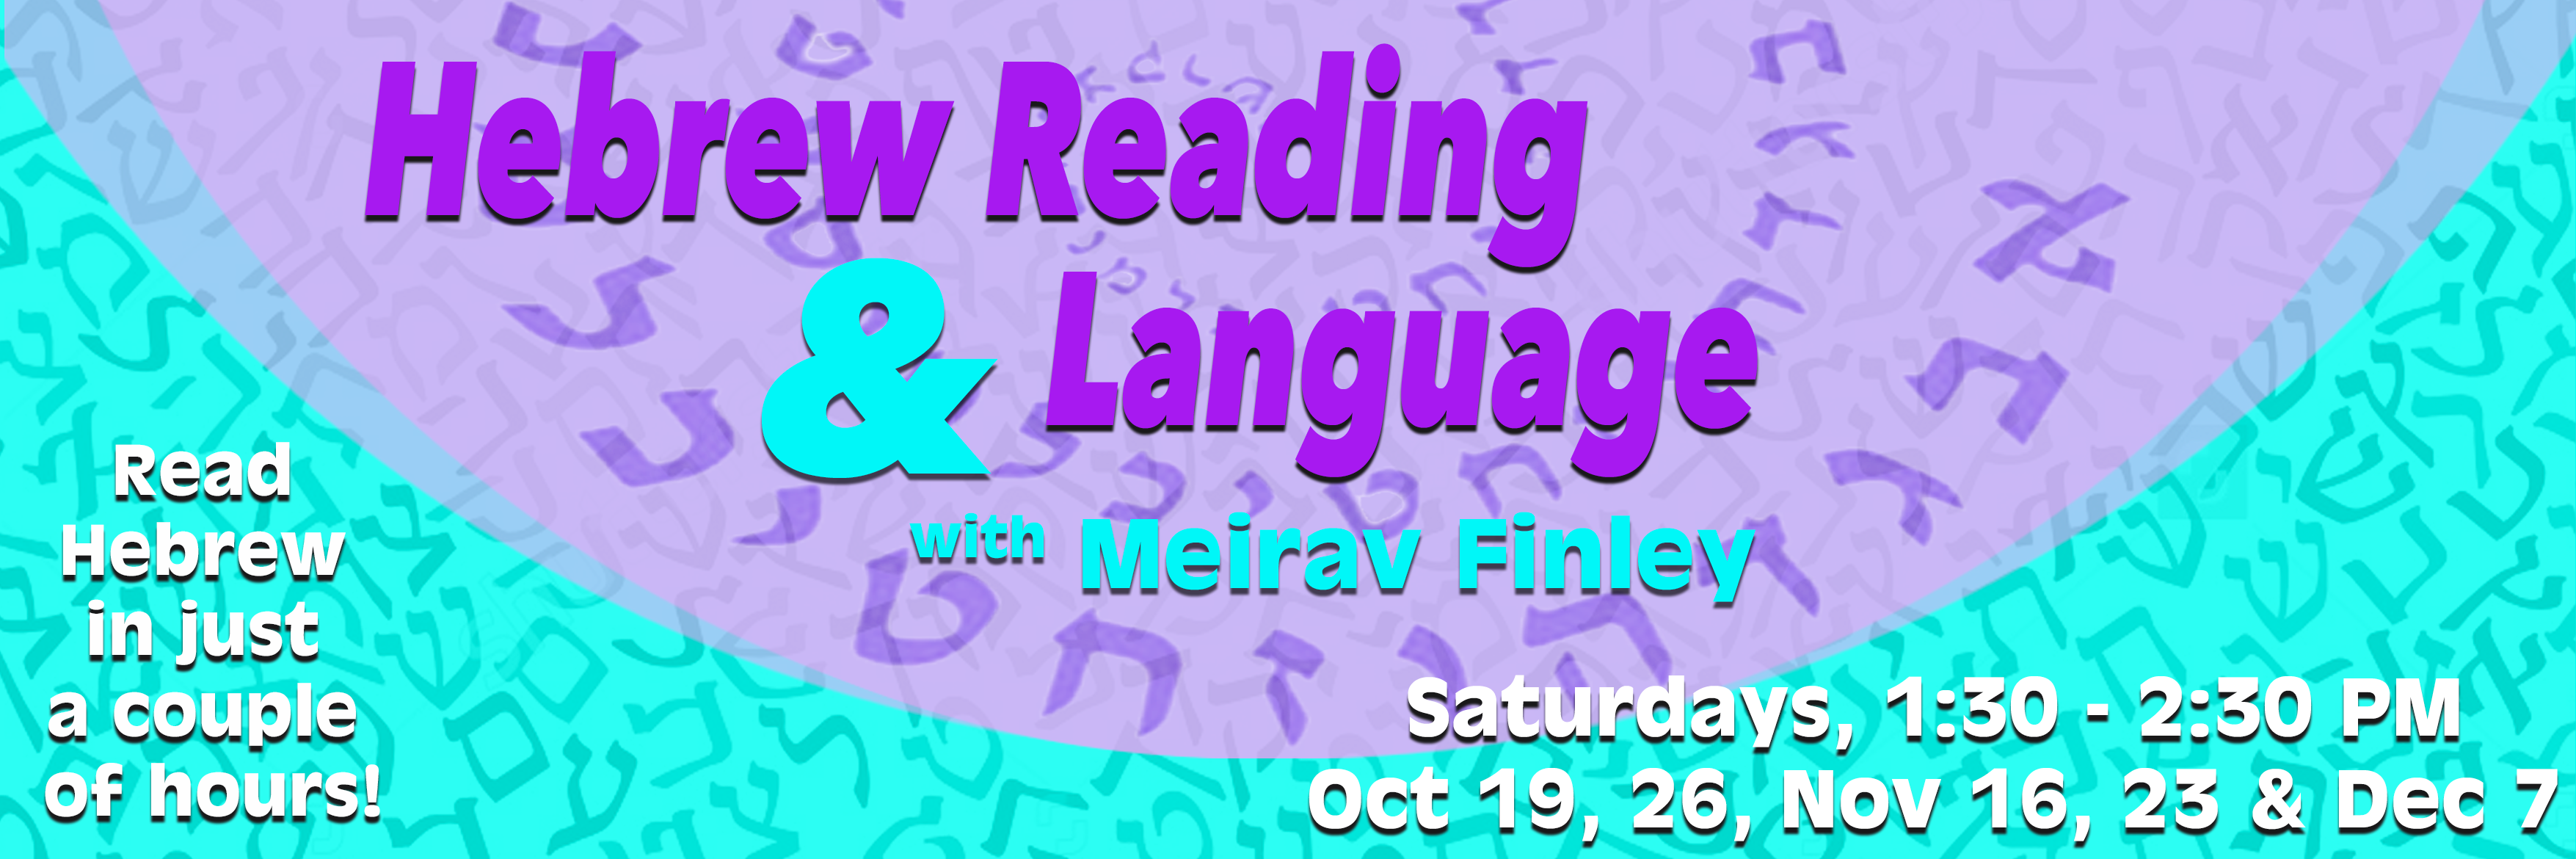 Banner Image for Hebrew Reading & Language